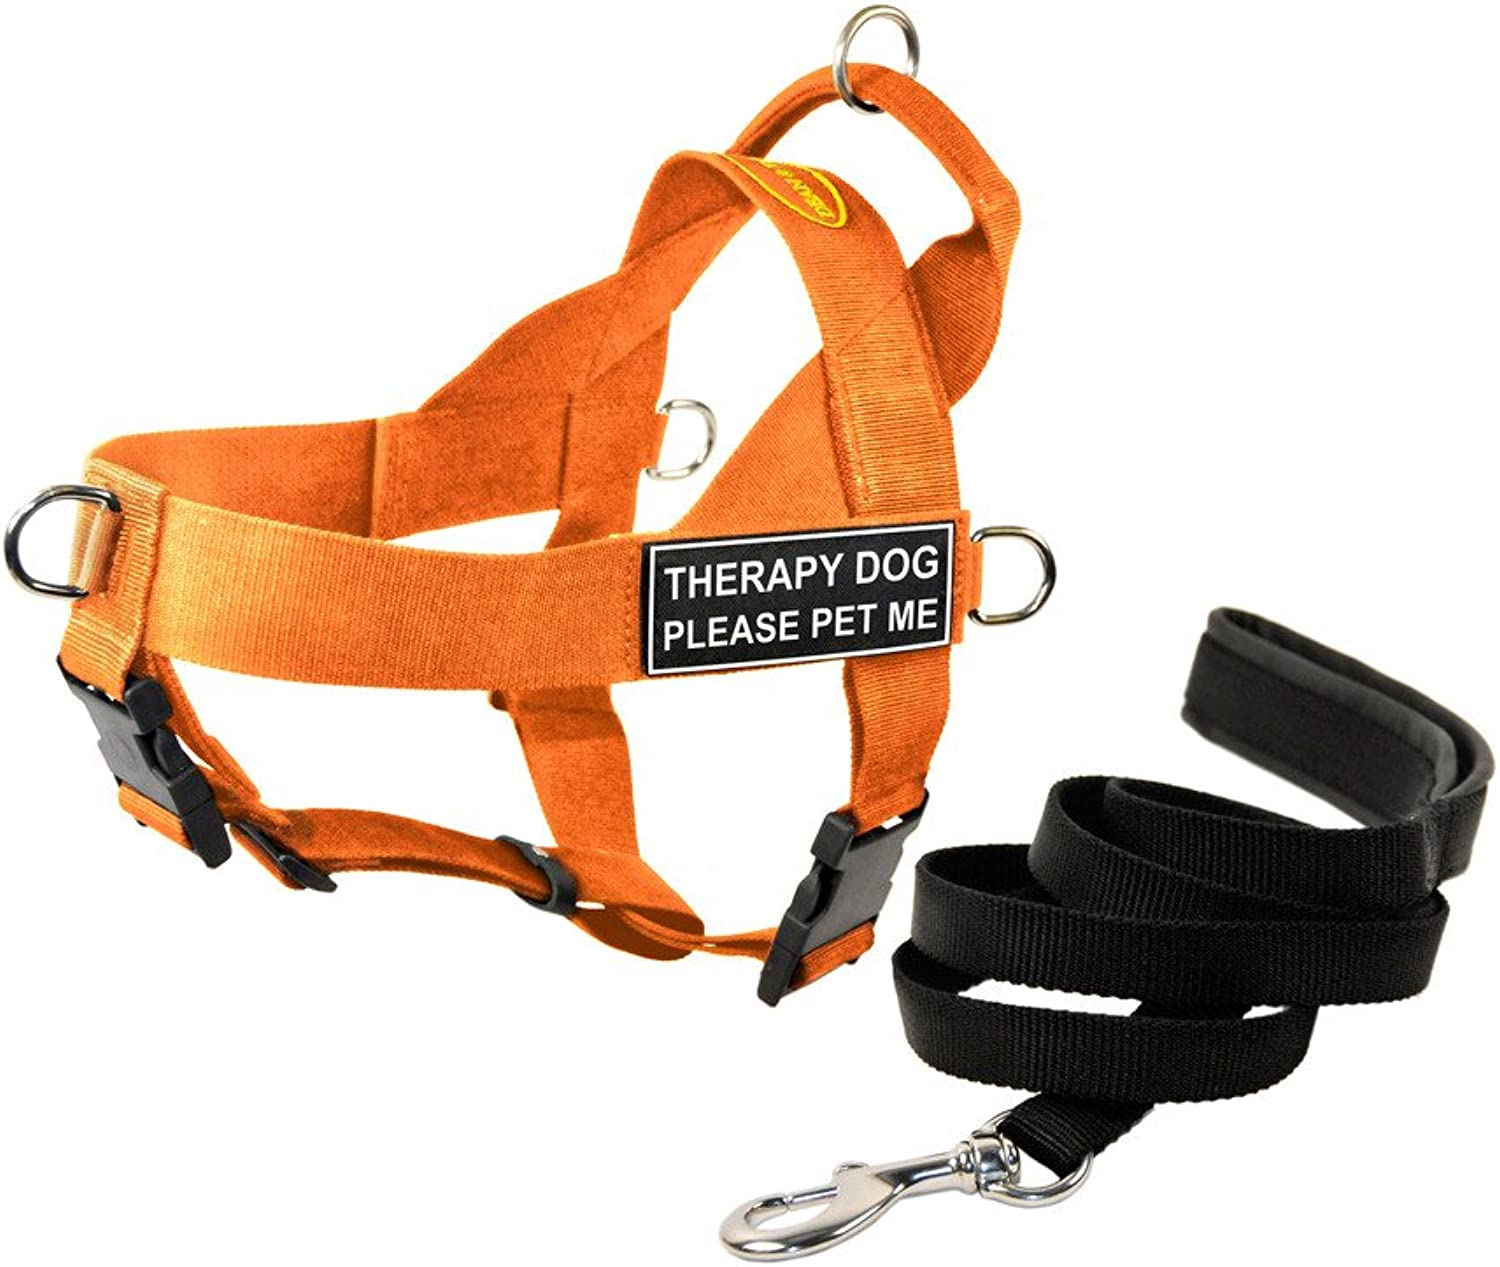 Dean & Tyler DT Dog Harness with Therapy Dog Please Pet Me Patches and Leash, orange, XLarge